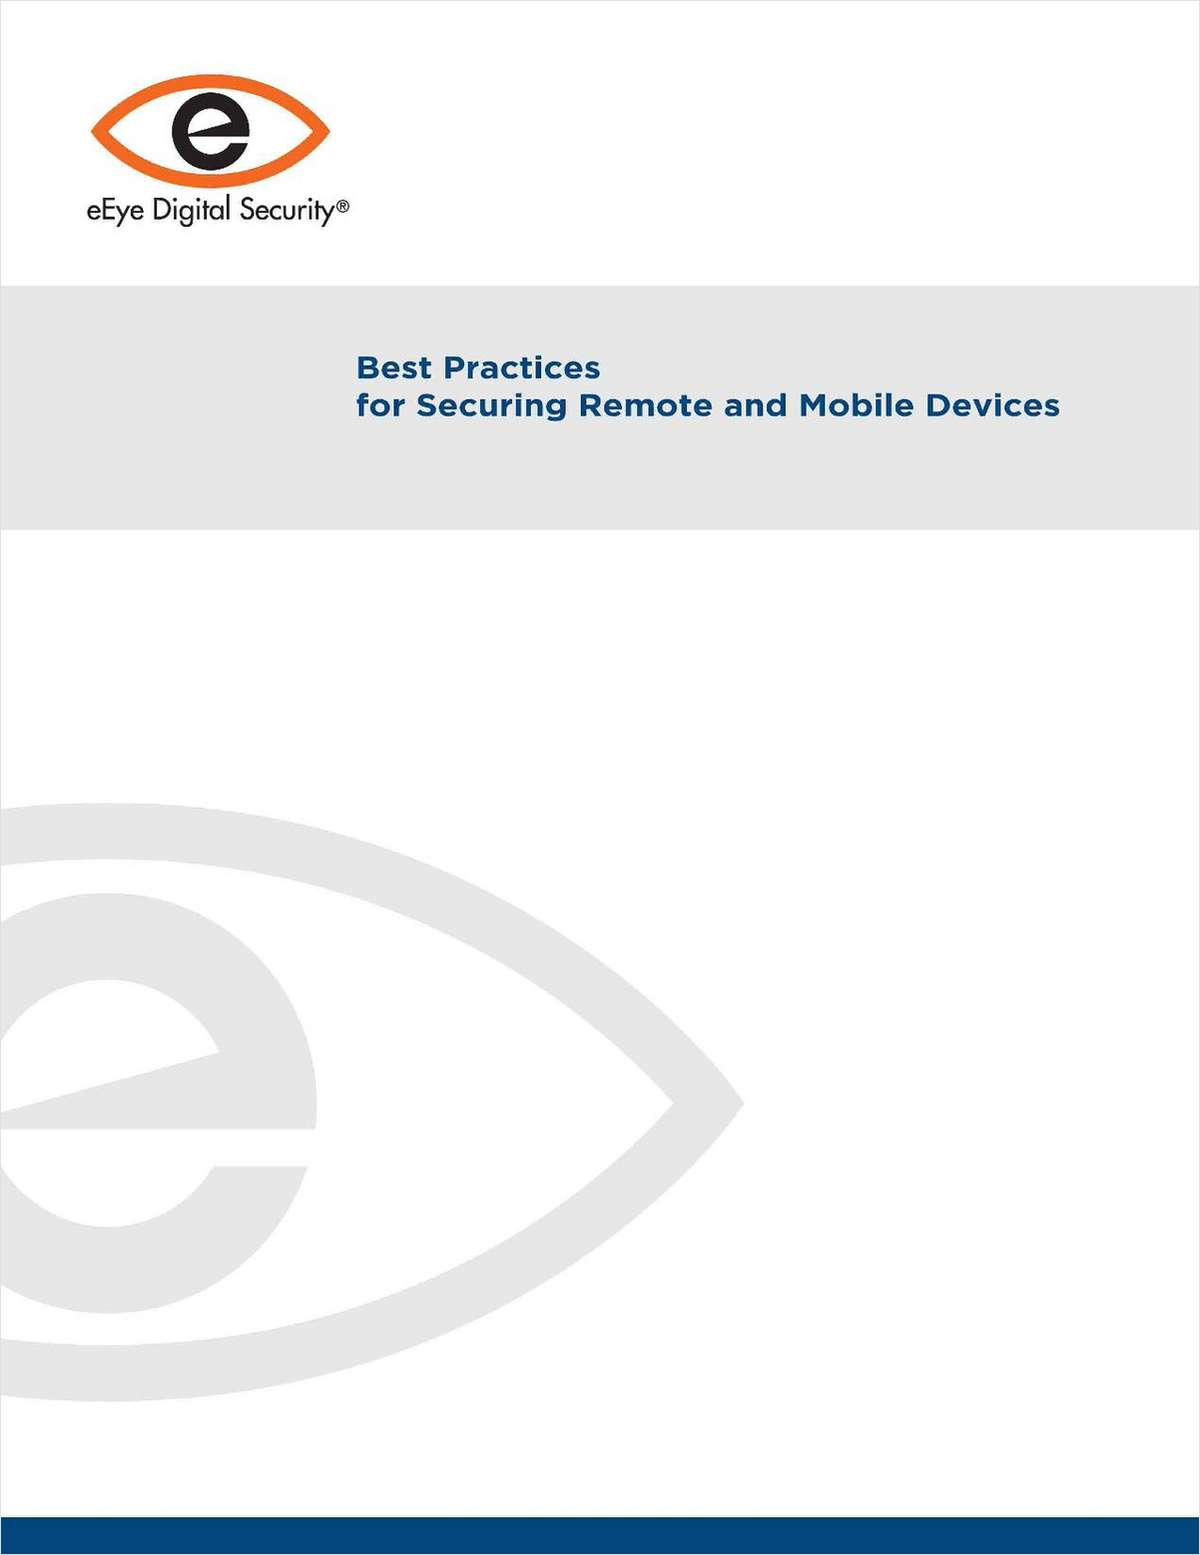 Best Practices for Security Remote and Mobile Devices